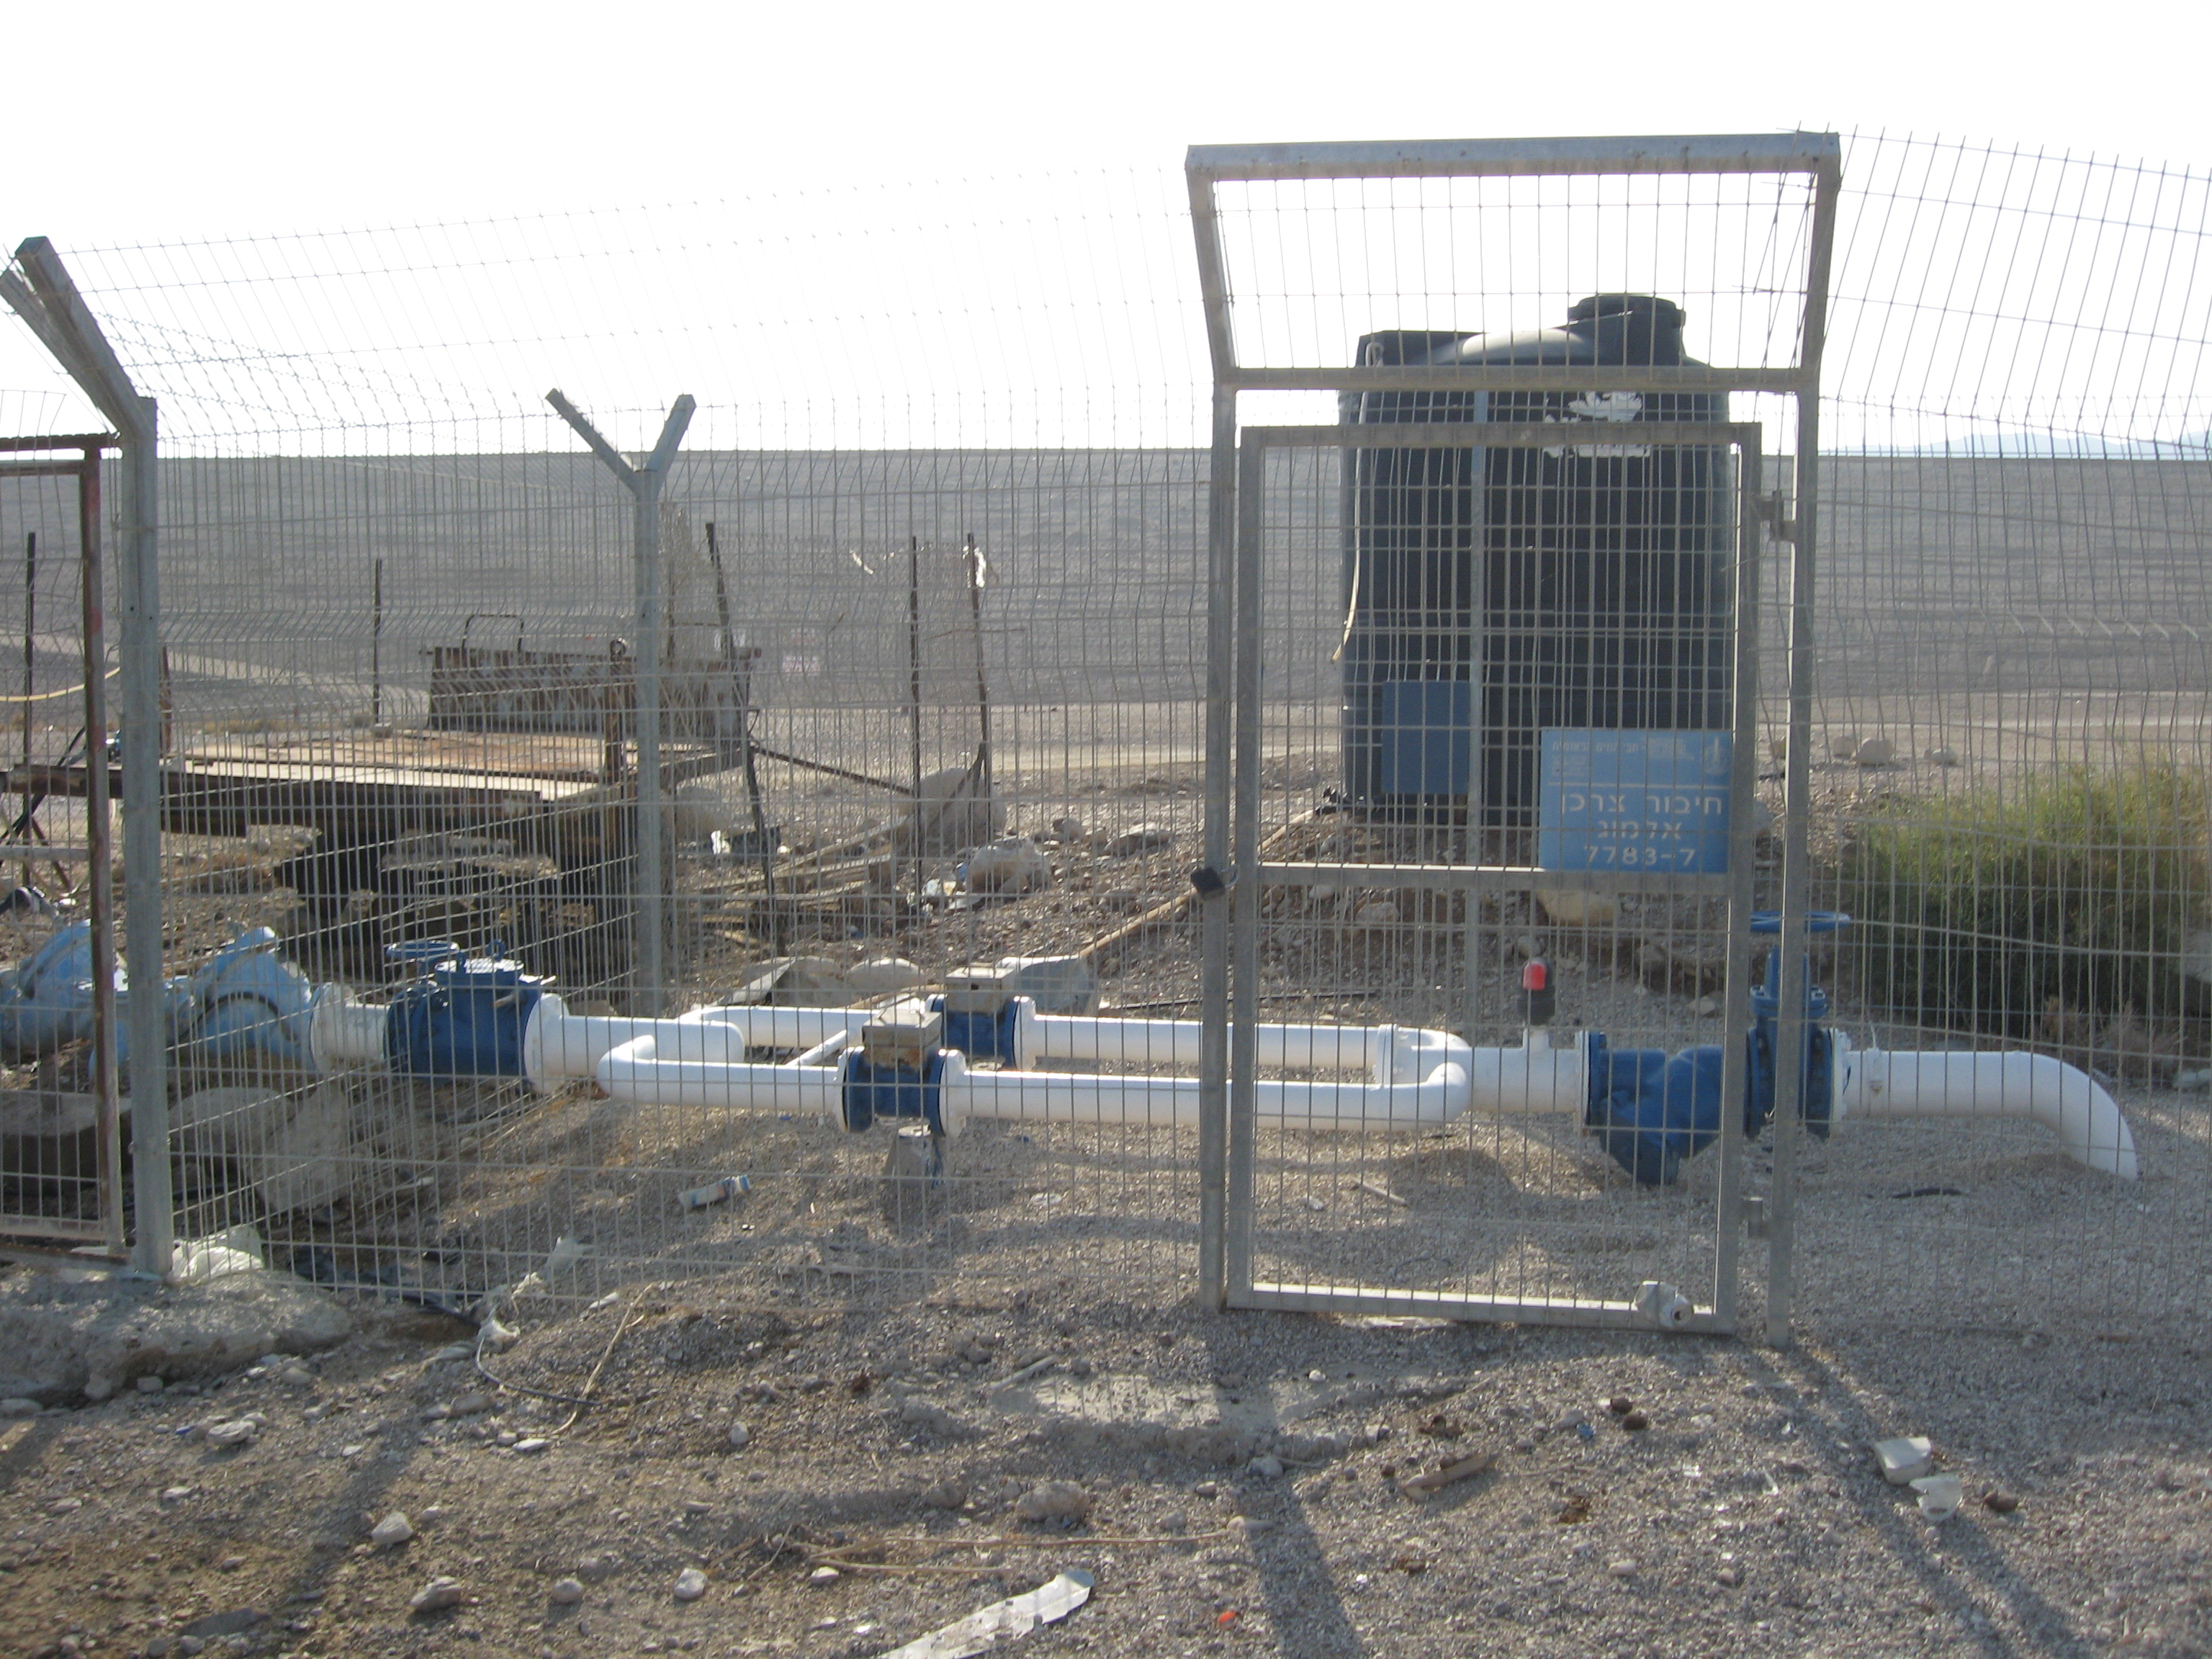 A Mekorot water facility at the Reservoir Au France - occupied Jordan Valley - photo taken February 2013